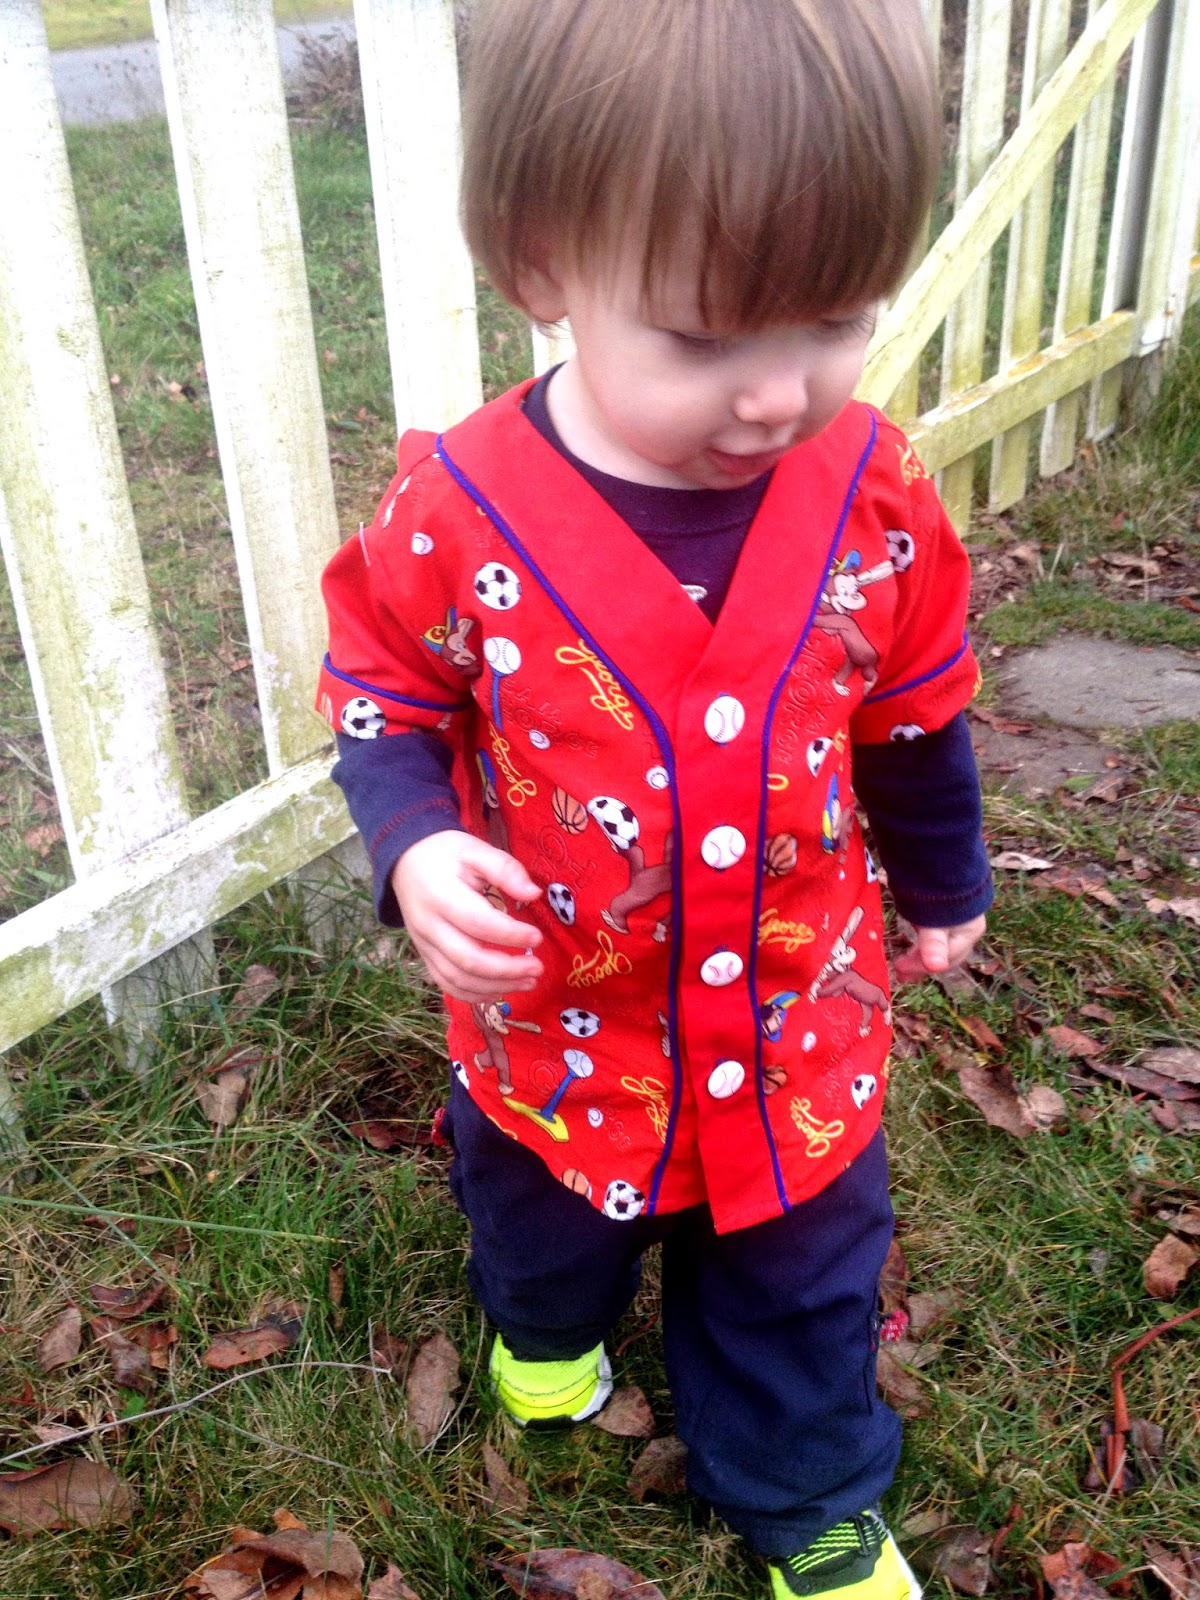 Old Tyme BaseNall Shirt  from Dandelions and Dungarees by Keep Calm and Carrion